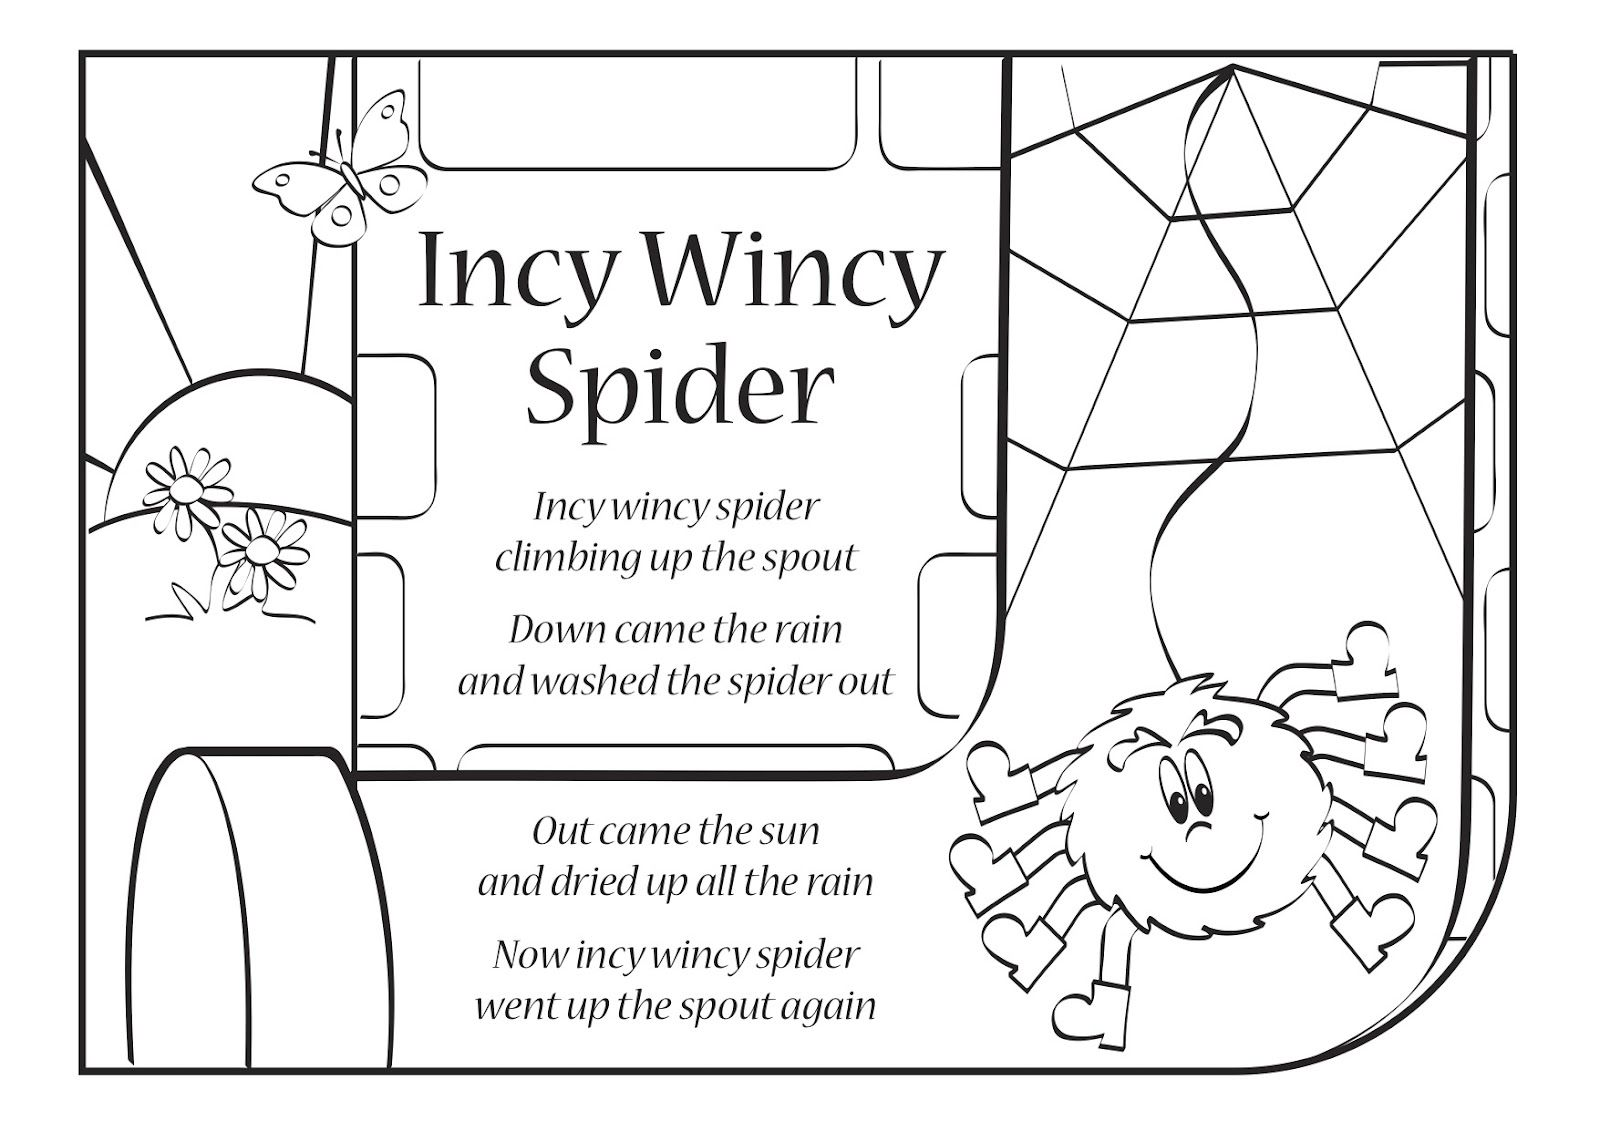 Itsy Bitsy Spider Also Known As Incy Wincy Spider Is A Popular Nursery Rhyme That